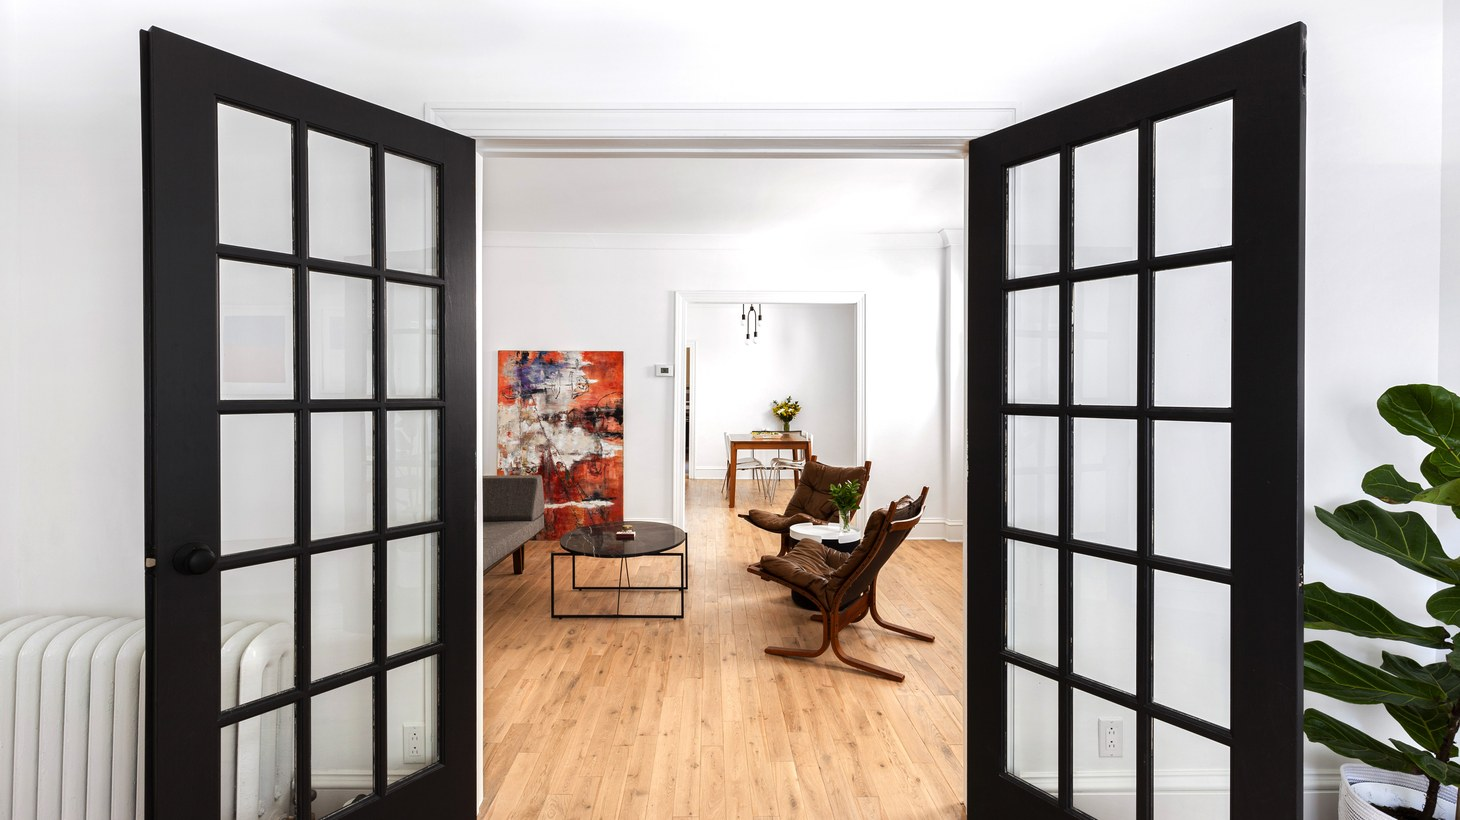 This Sweeten couple brought a minimalist vibe to their 1920s house in Midwood Brooklyn by adding molding, a graphic color scheme, and a set of French doors in the foyer for a dramatic entrance.